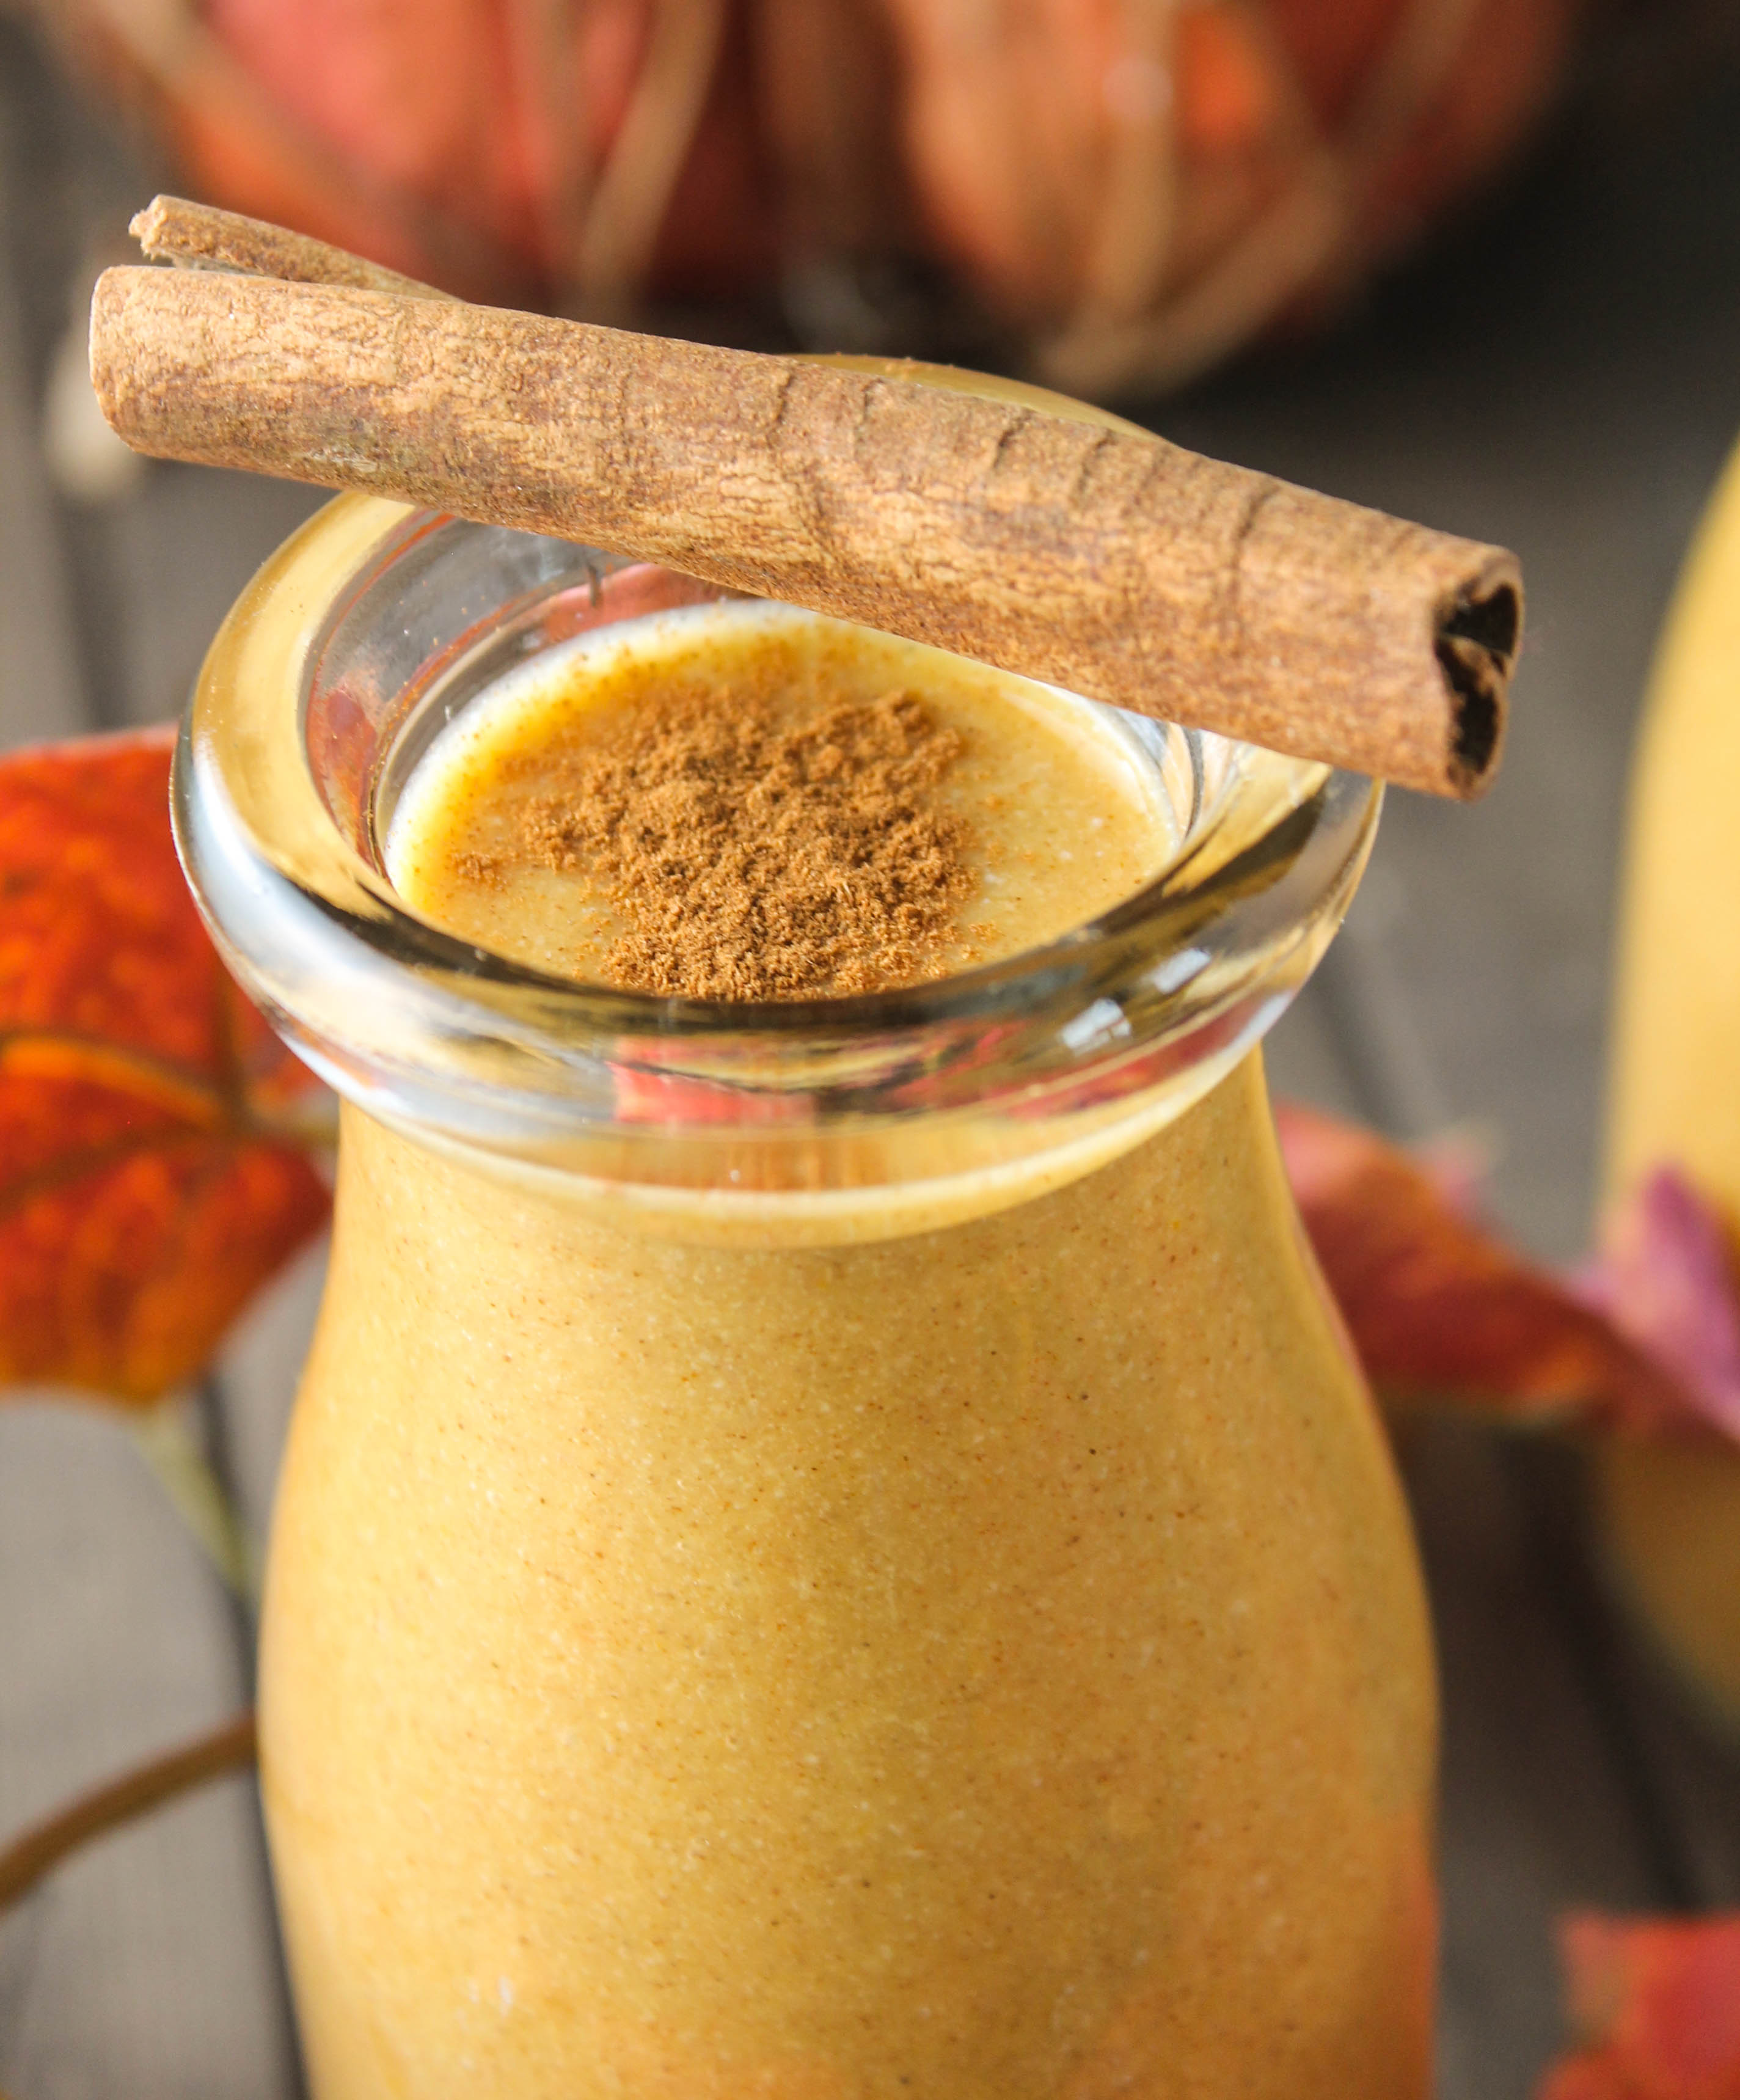 a close up of a clear glass filled with an orange colored pumpkin smoothie topped with a sprinkle to cinnamon and a cinnamon stick resting on the glass's edge